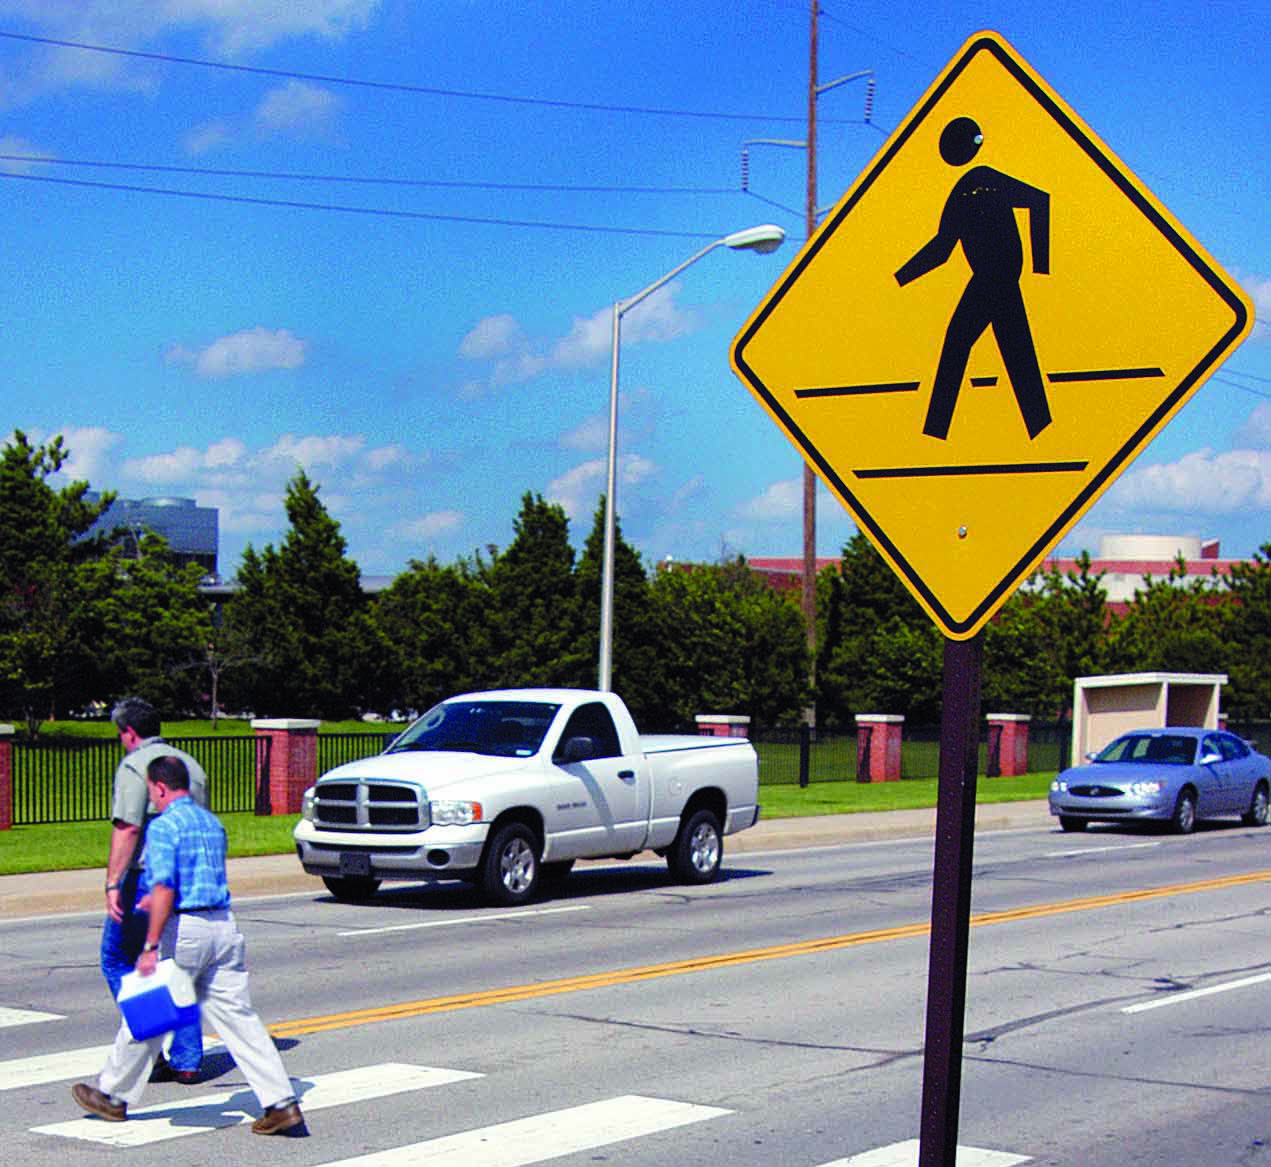 Causes of Pedestrian Knockdown Accidents